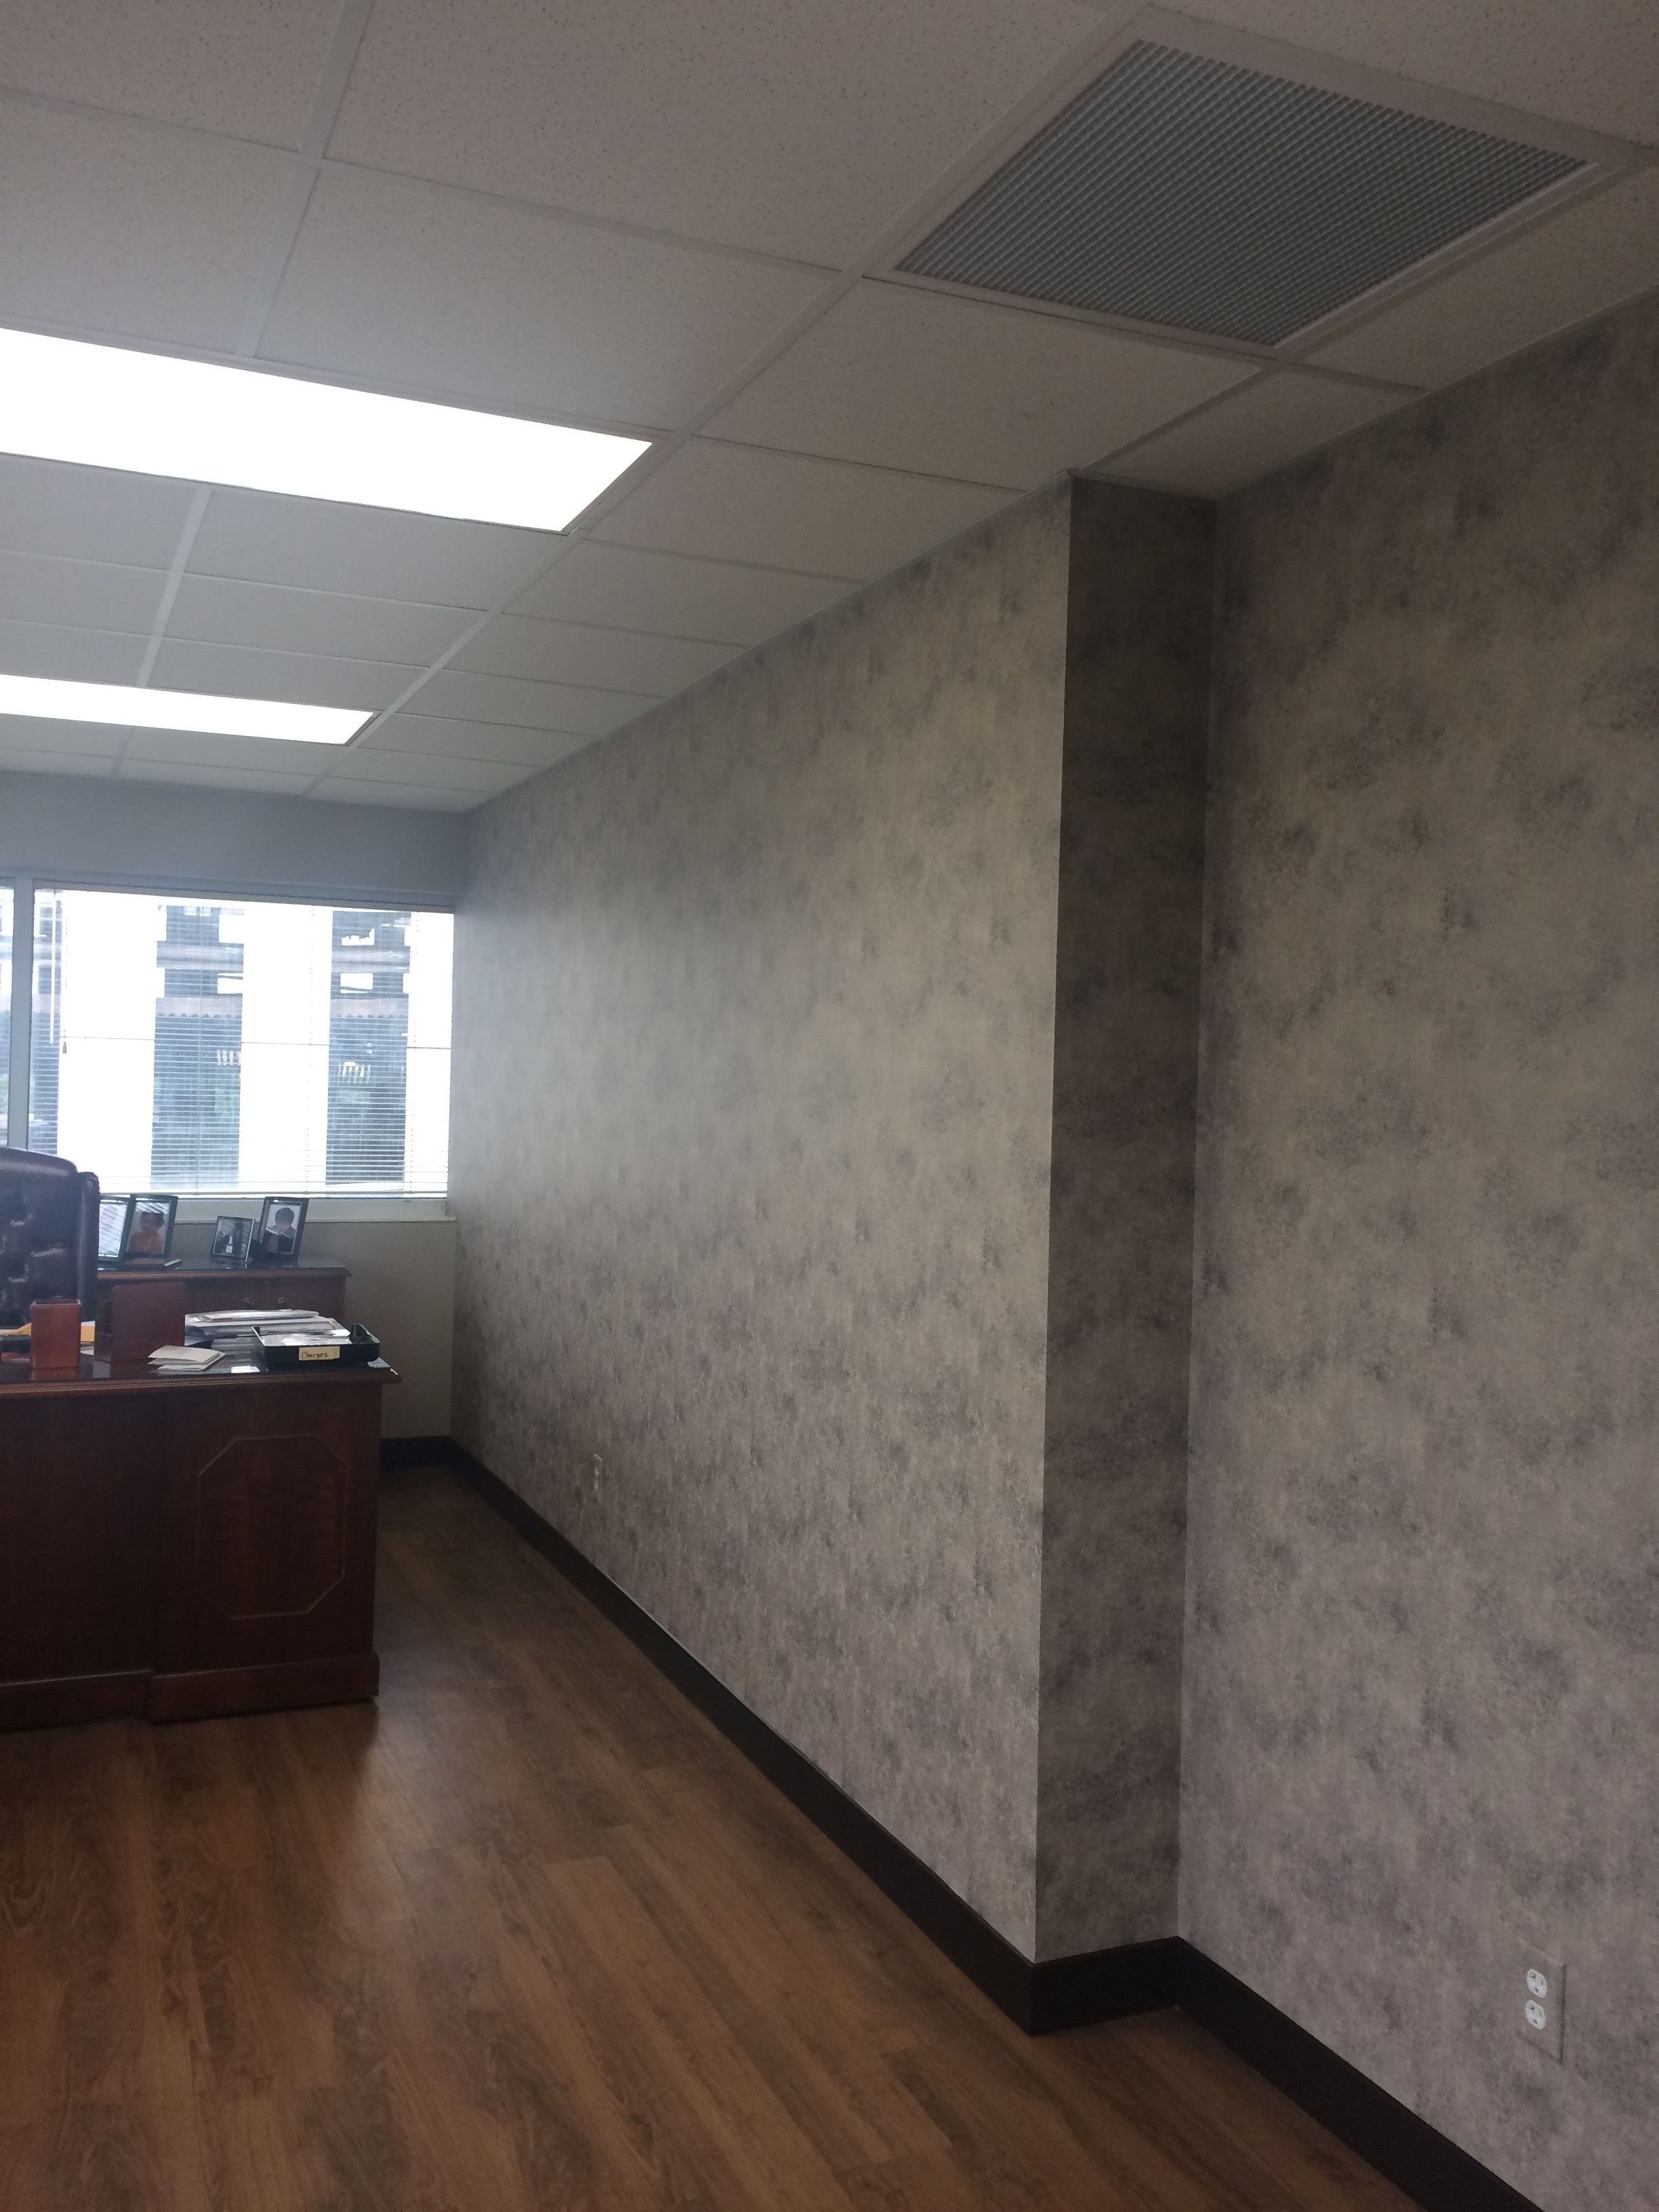 Painting Contractor Wichita Ks Get A Free Quote